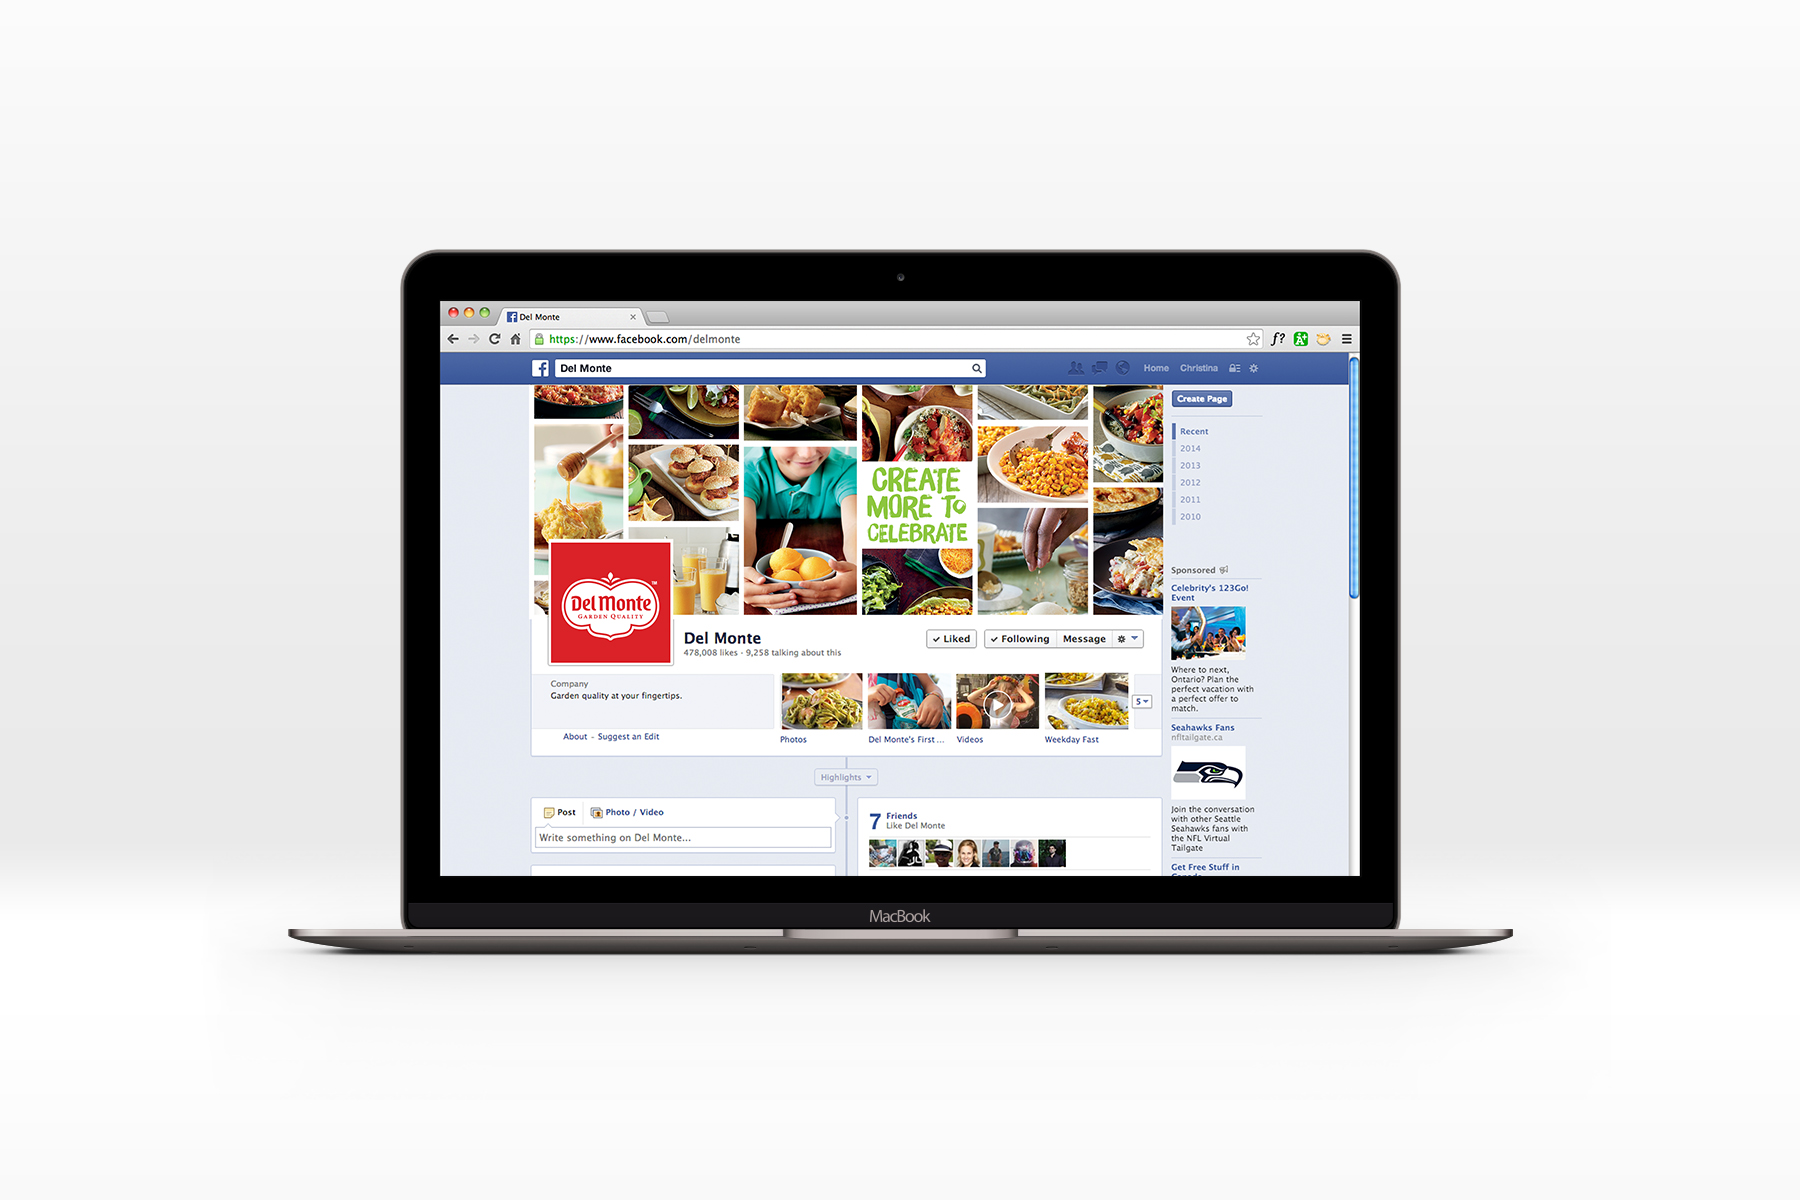 DM_Celebrate_Facebook_MacBook_MockUp.jpg